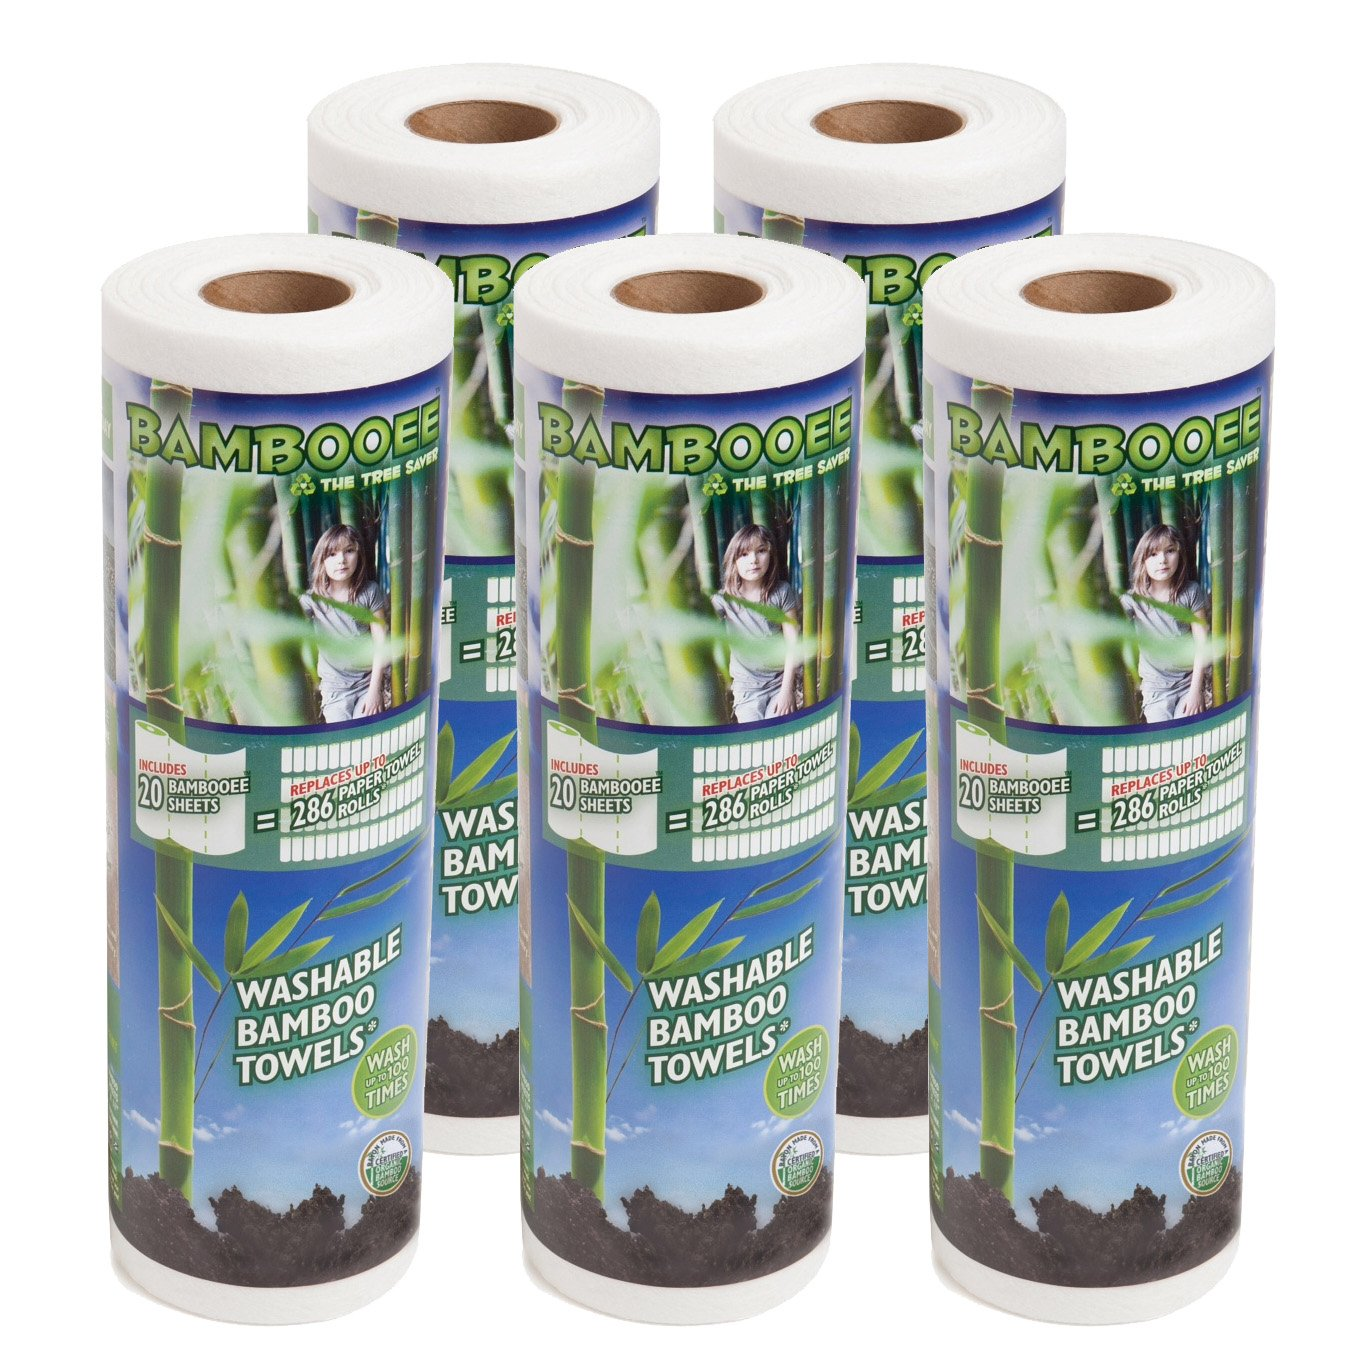 Single roll, each roll comes with 20 sheets of Bamboee Towels Bambooee Reusable Bamboo Towel